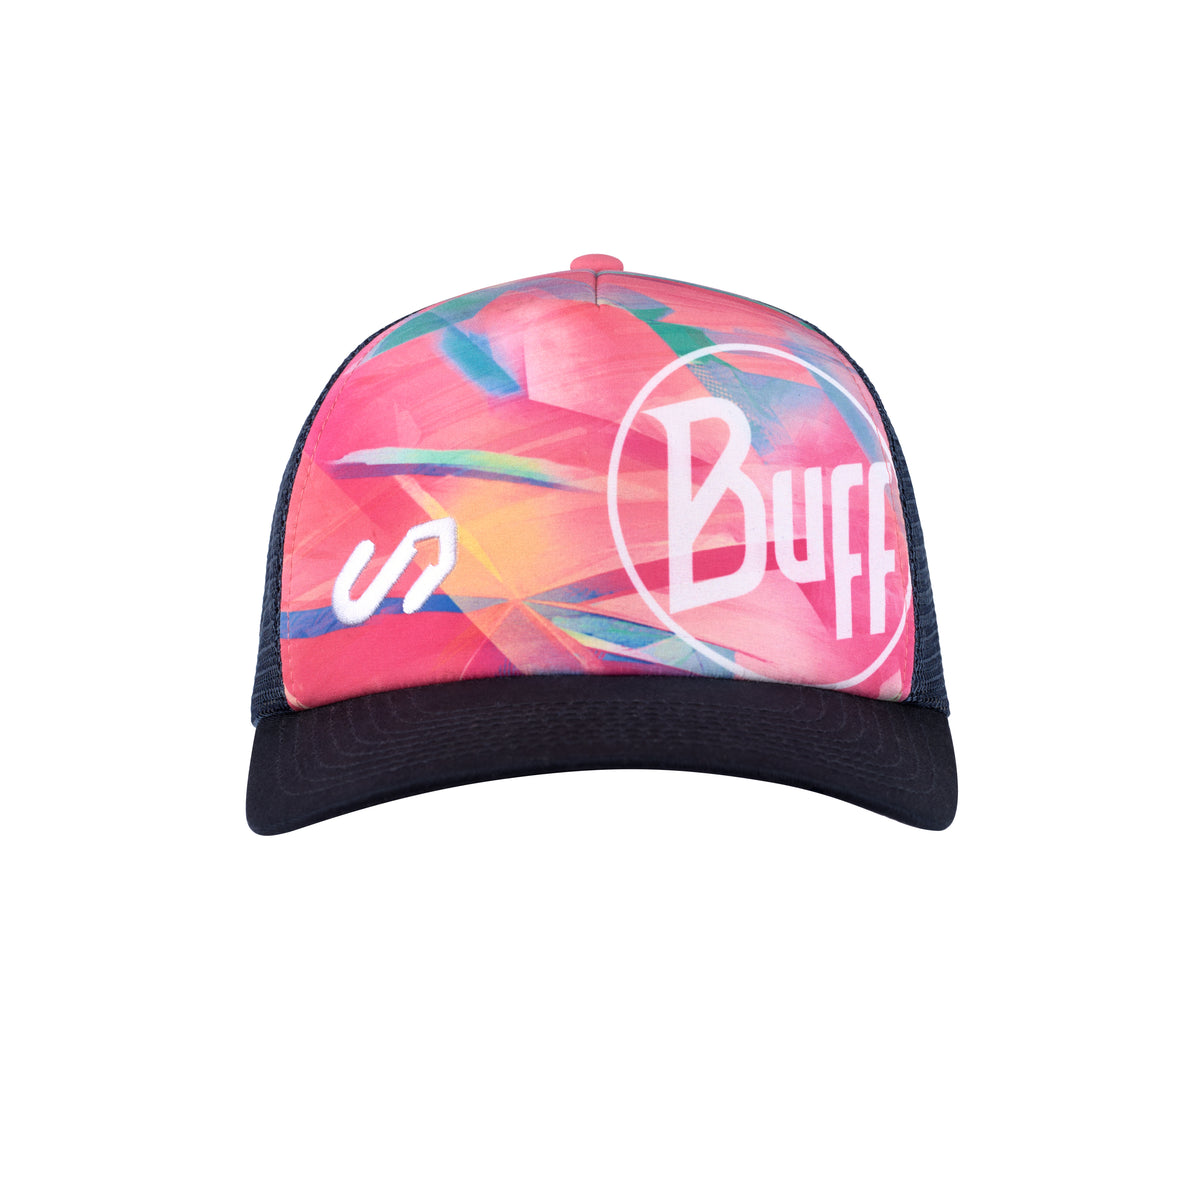 BUFF - DANNI HAWAII CAP